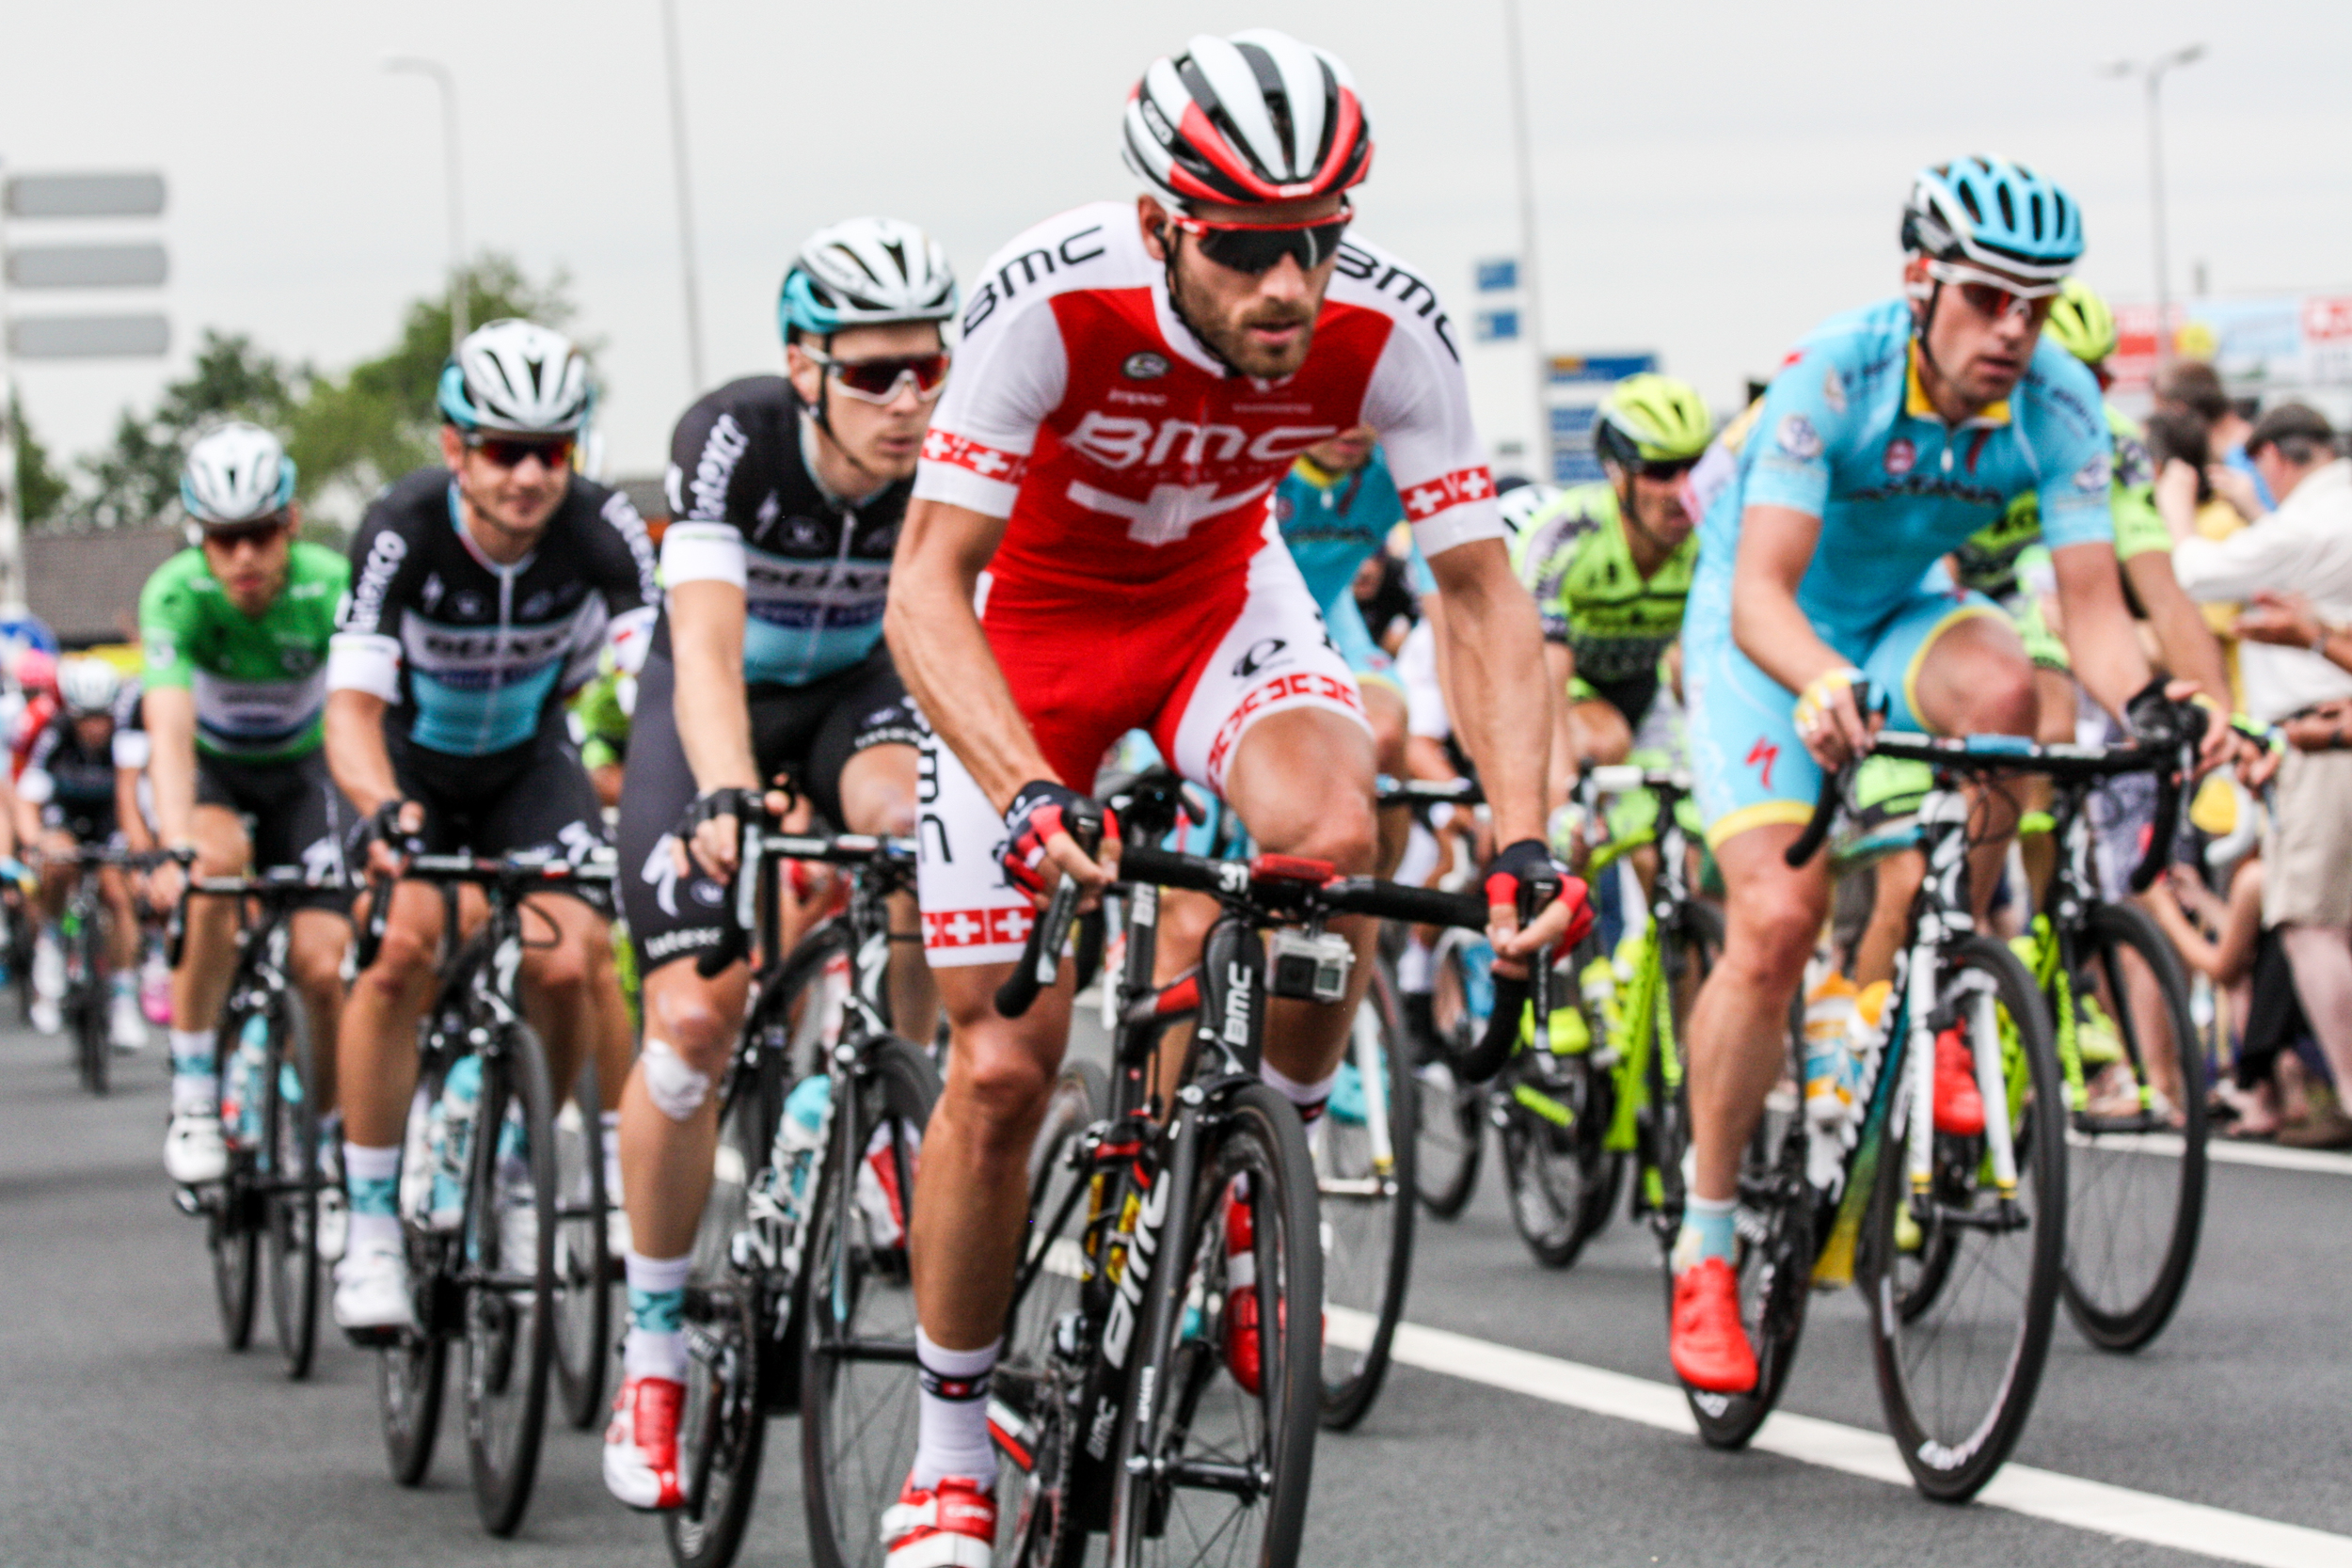 """Thirty seconds or so after the leaders passed by, we saw this """"peloton"""" of over a hundred riders speed by in a matter of seconds."""